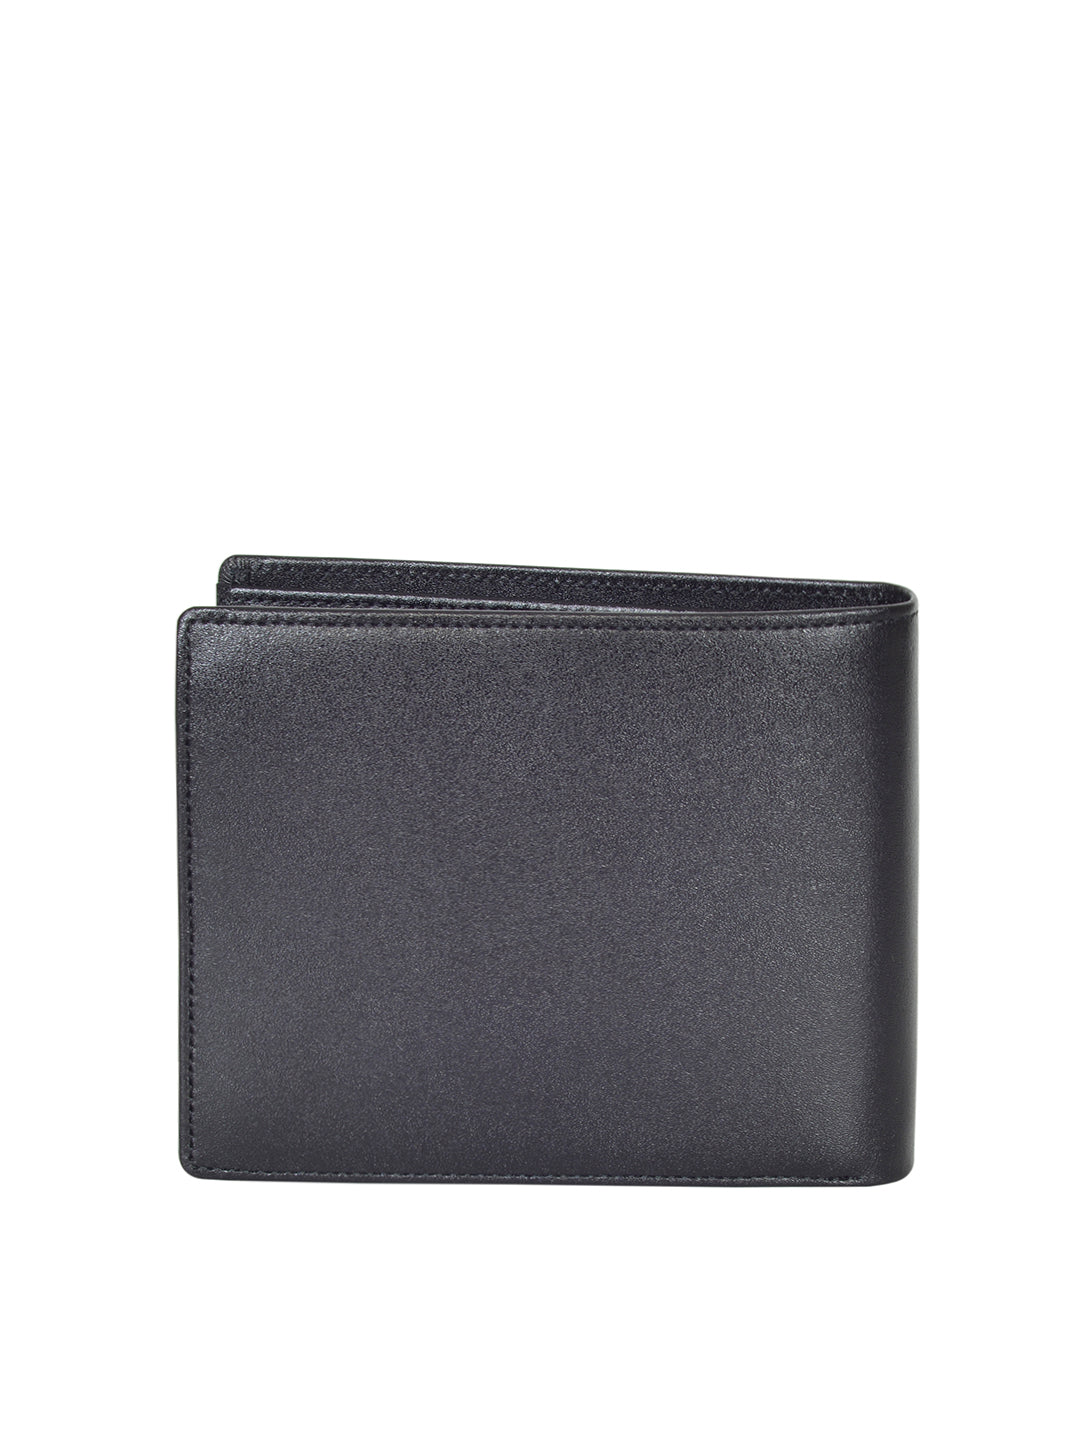 MONT BLANC MEN'S Meisterstück 6CC LEATHER WALLET